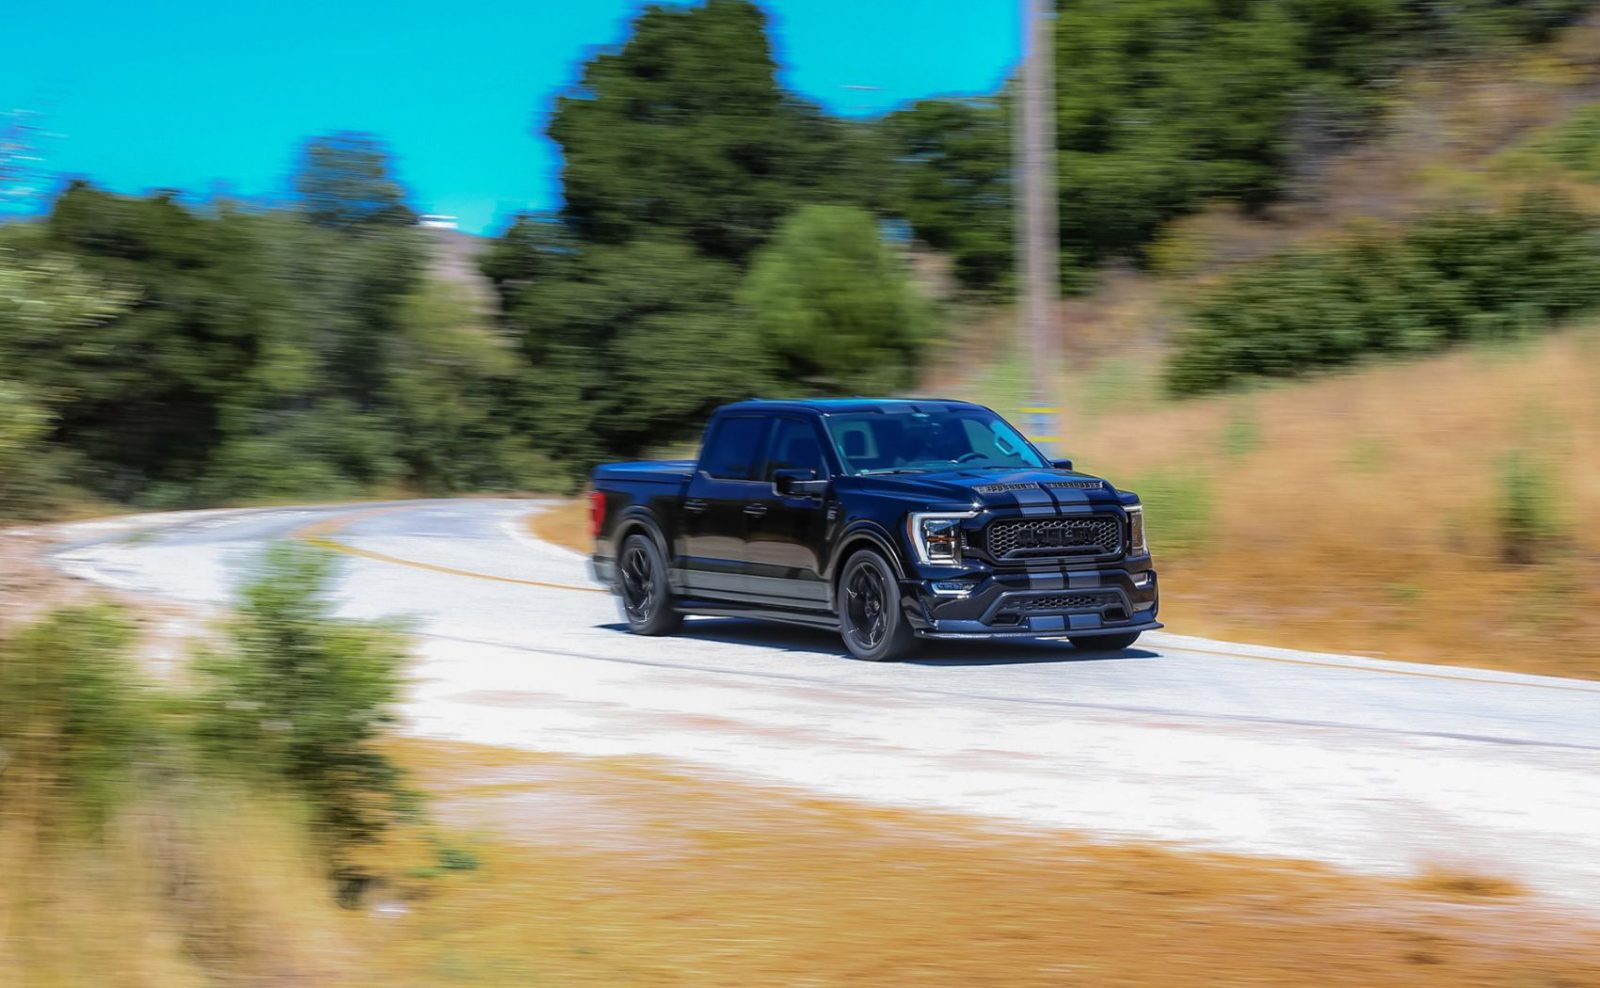 meet-the-insane-f-150-muscle-truck-that-can-accelerate-faster-than-a-ferrari-f40